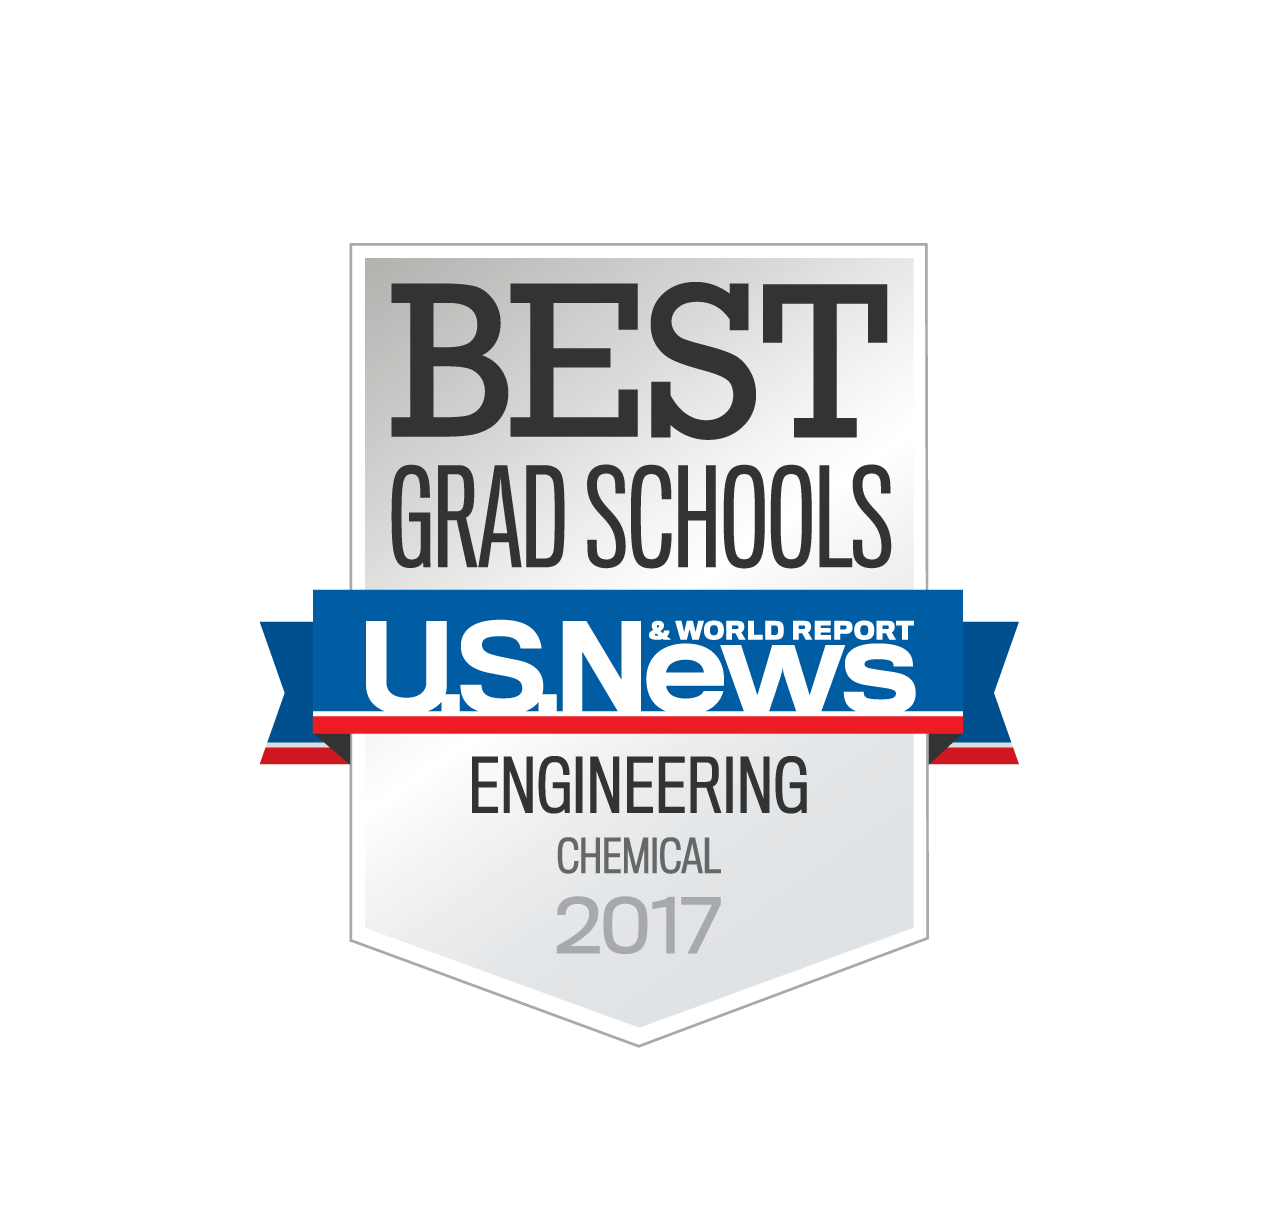 U.S. News & World Report Best Grad Schools